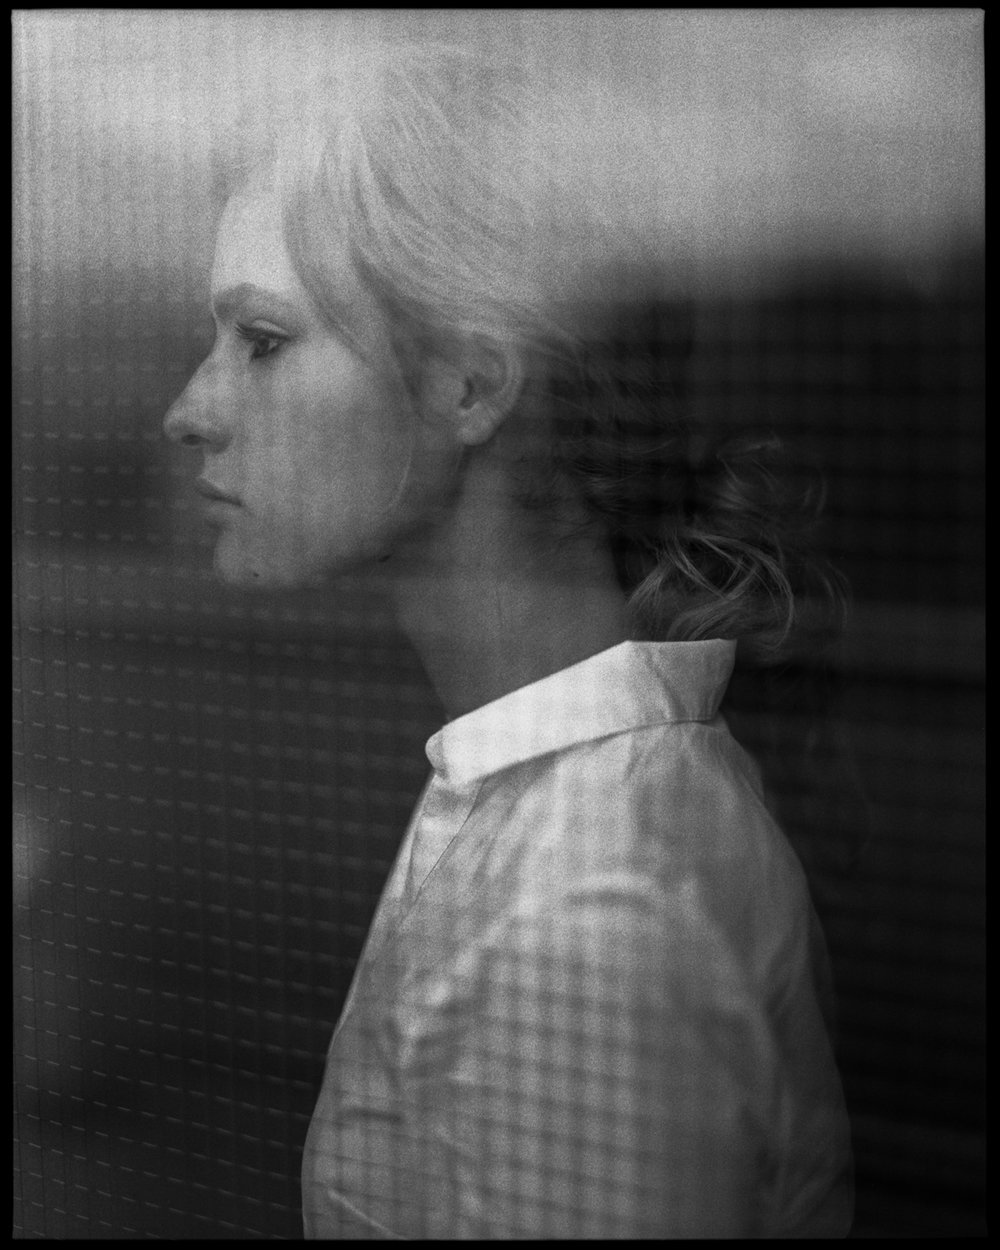 7_Sydney_Studio_Natural_Light_Shoot_Through_the_Glass_Pentax_67_Ilford_HP5_CopyrightTaylor_Noel_Photography_NYC.jpg